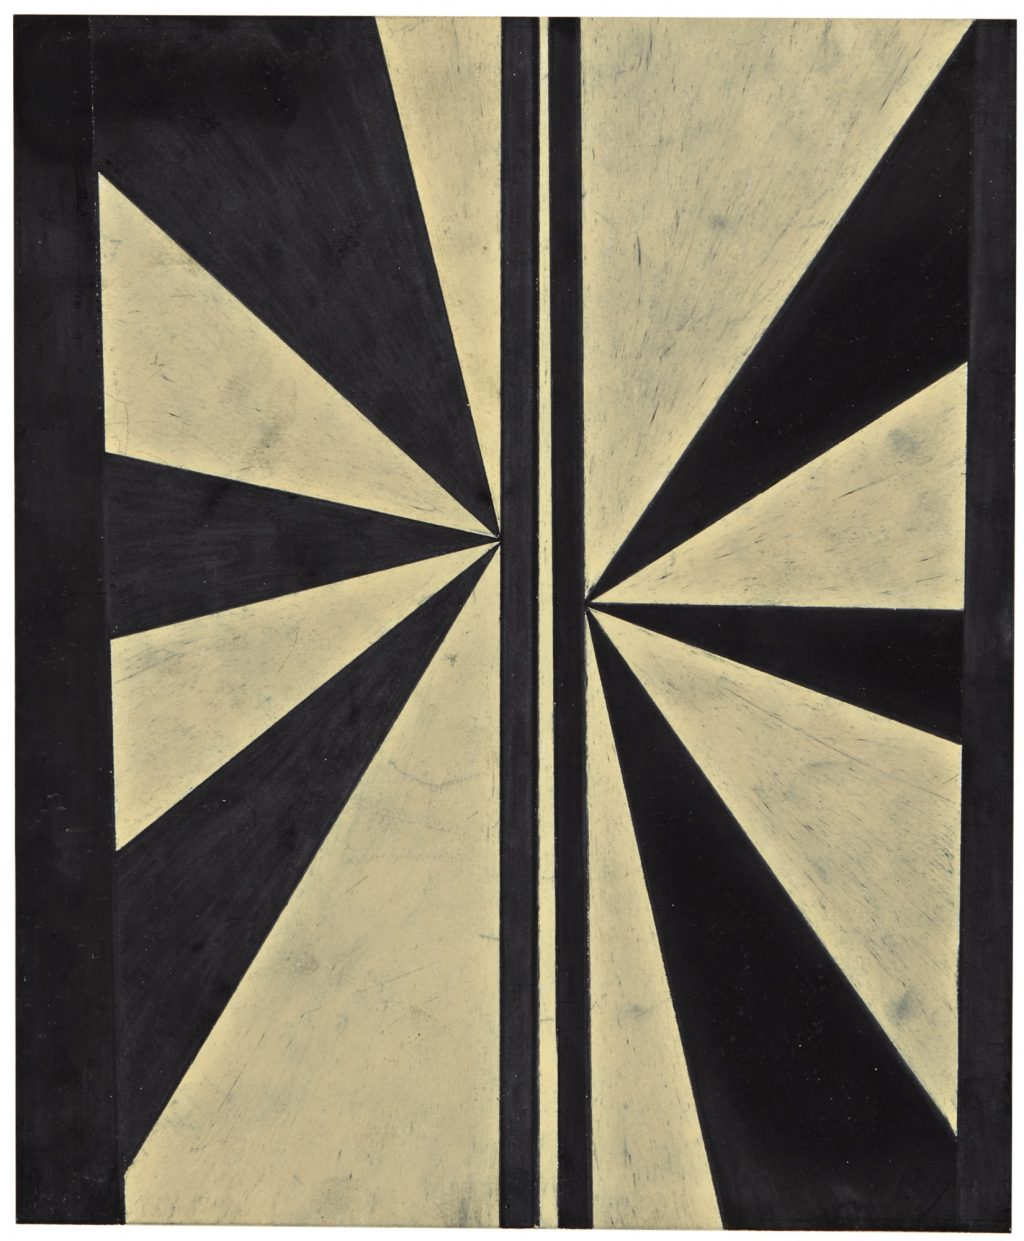 Mark Grotjahn Untitled (Black and Cream Butterfly) 2005, unsold Sotheby's Sept. 2018